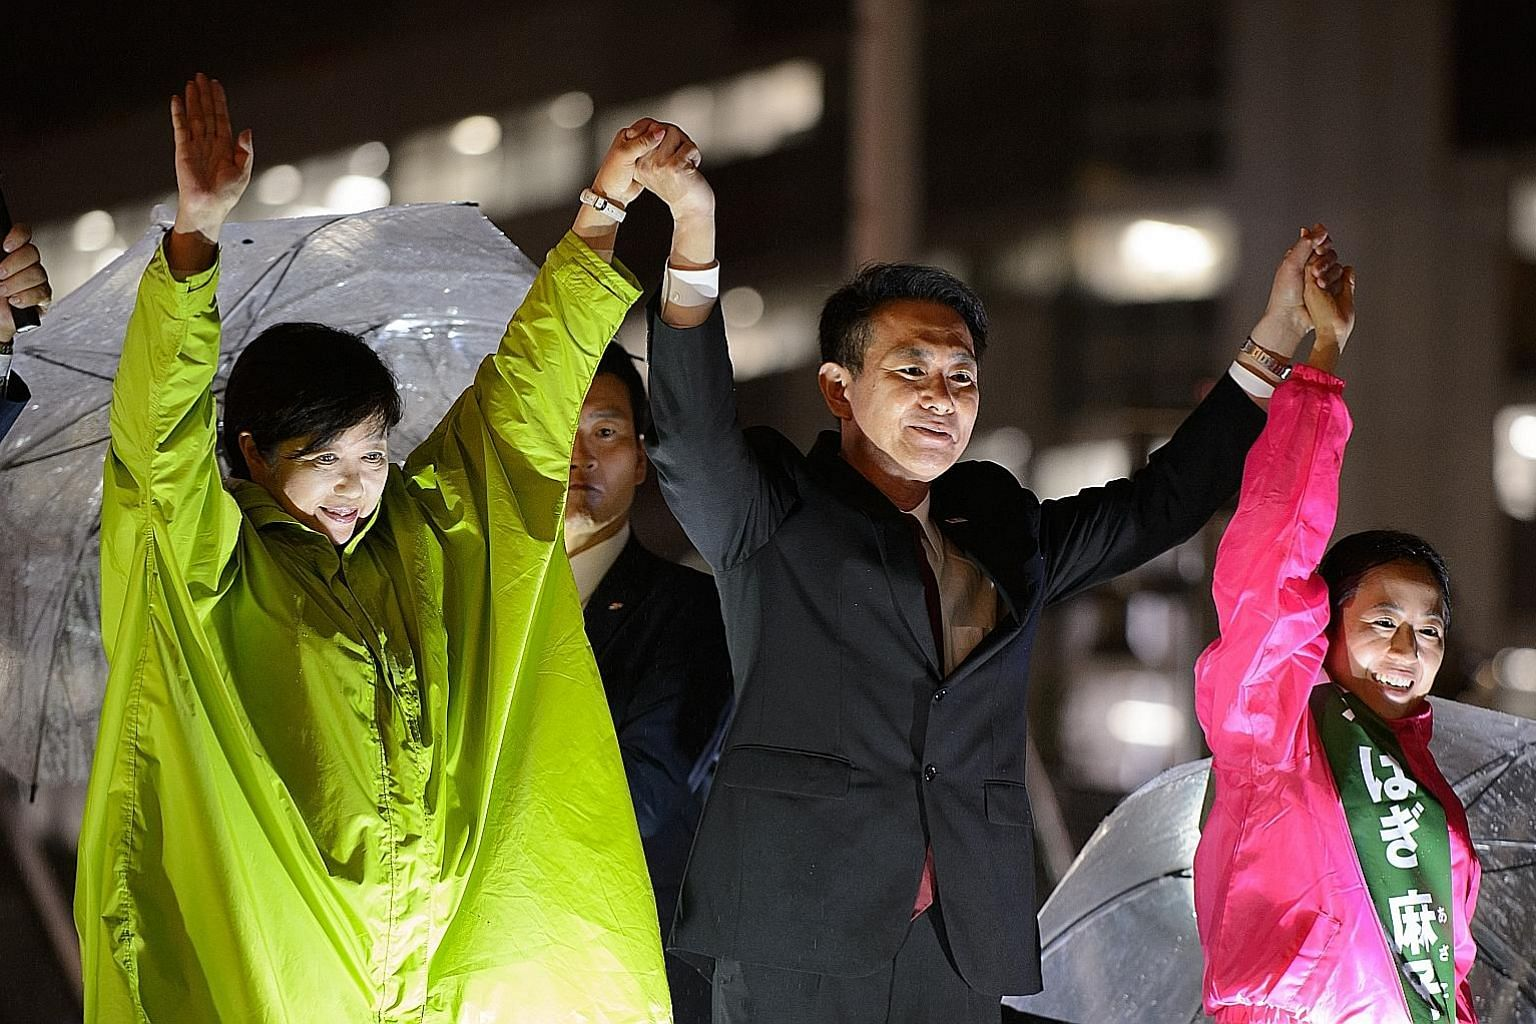 Kibo no To leader, Tokyo Governor Yuriko Koike (in green), with Mr Seiji Maehara, leader of the Democratic Party, at an election rally last week.